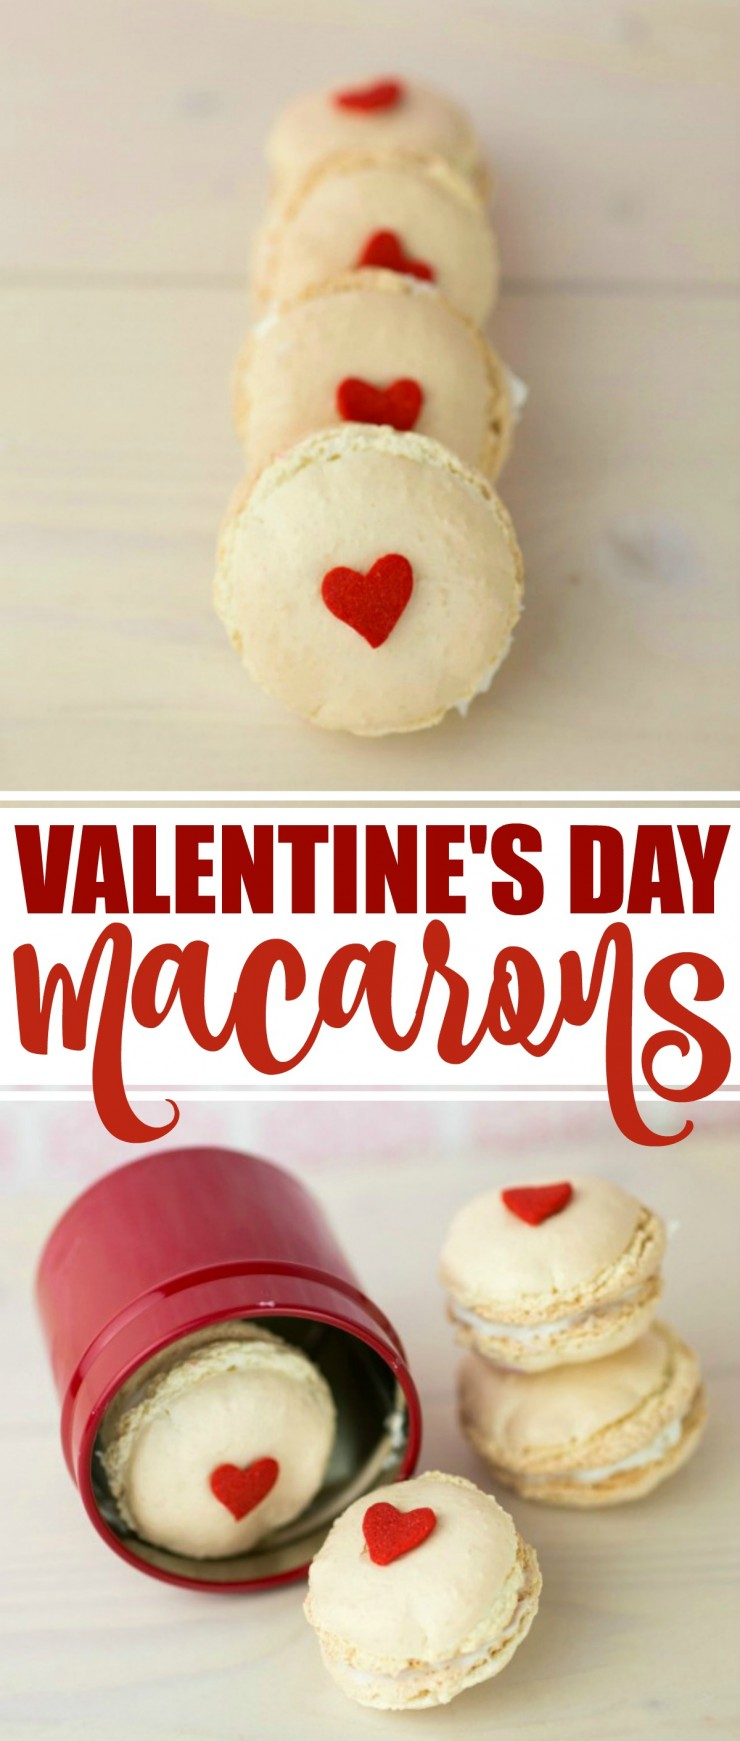 Macarons are a very popular delicacy loved by foodies for their delicate texture and gorgeous colours and these Valentines Day Macarons are no exception!.